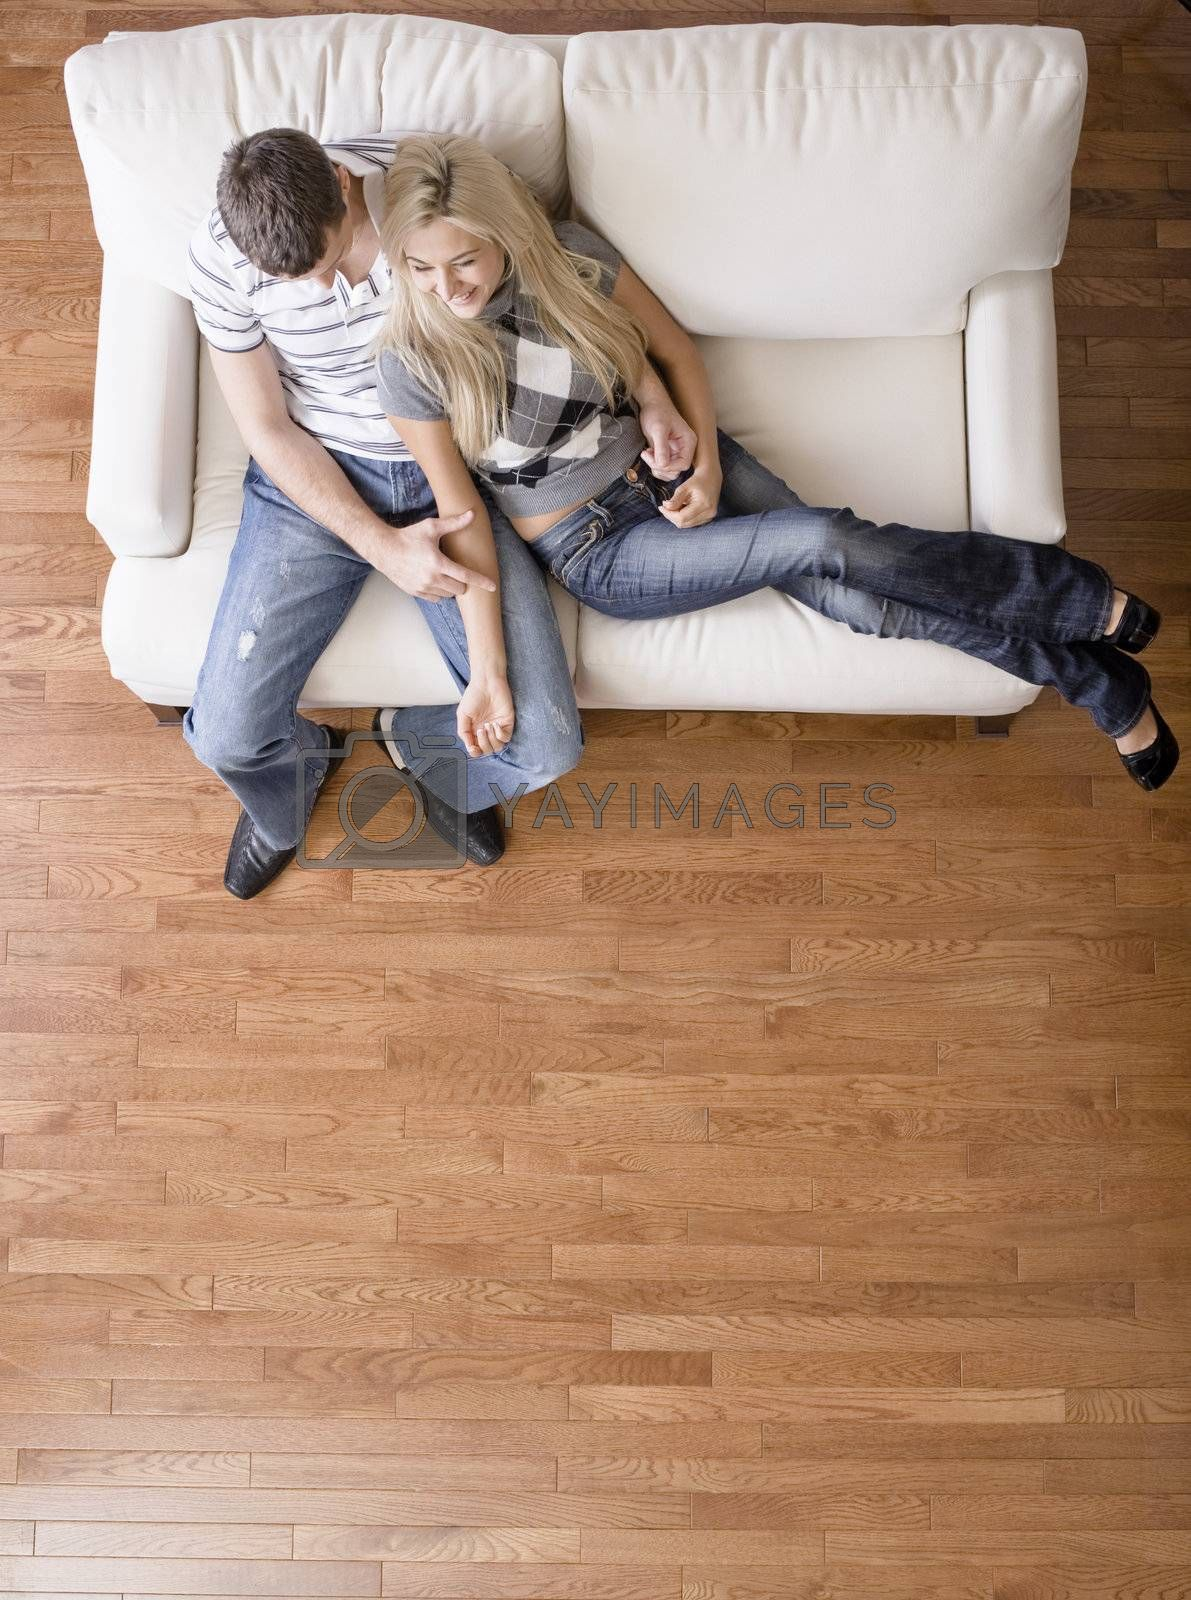 Overhead View of Couple on Love Seat by cardmaverick